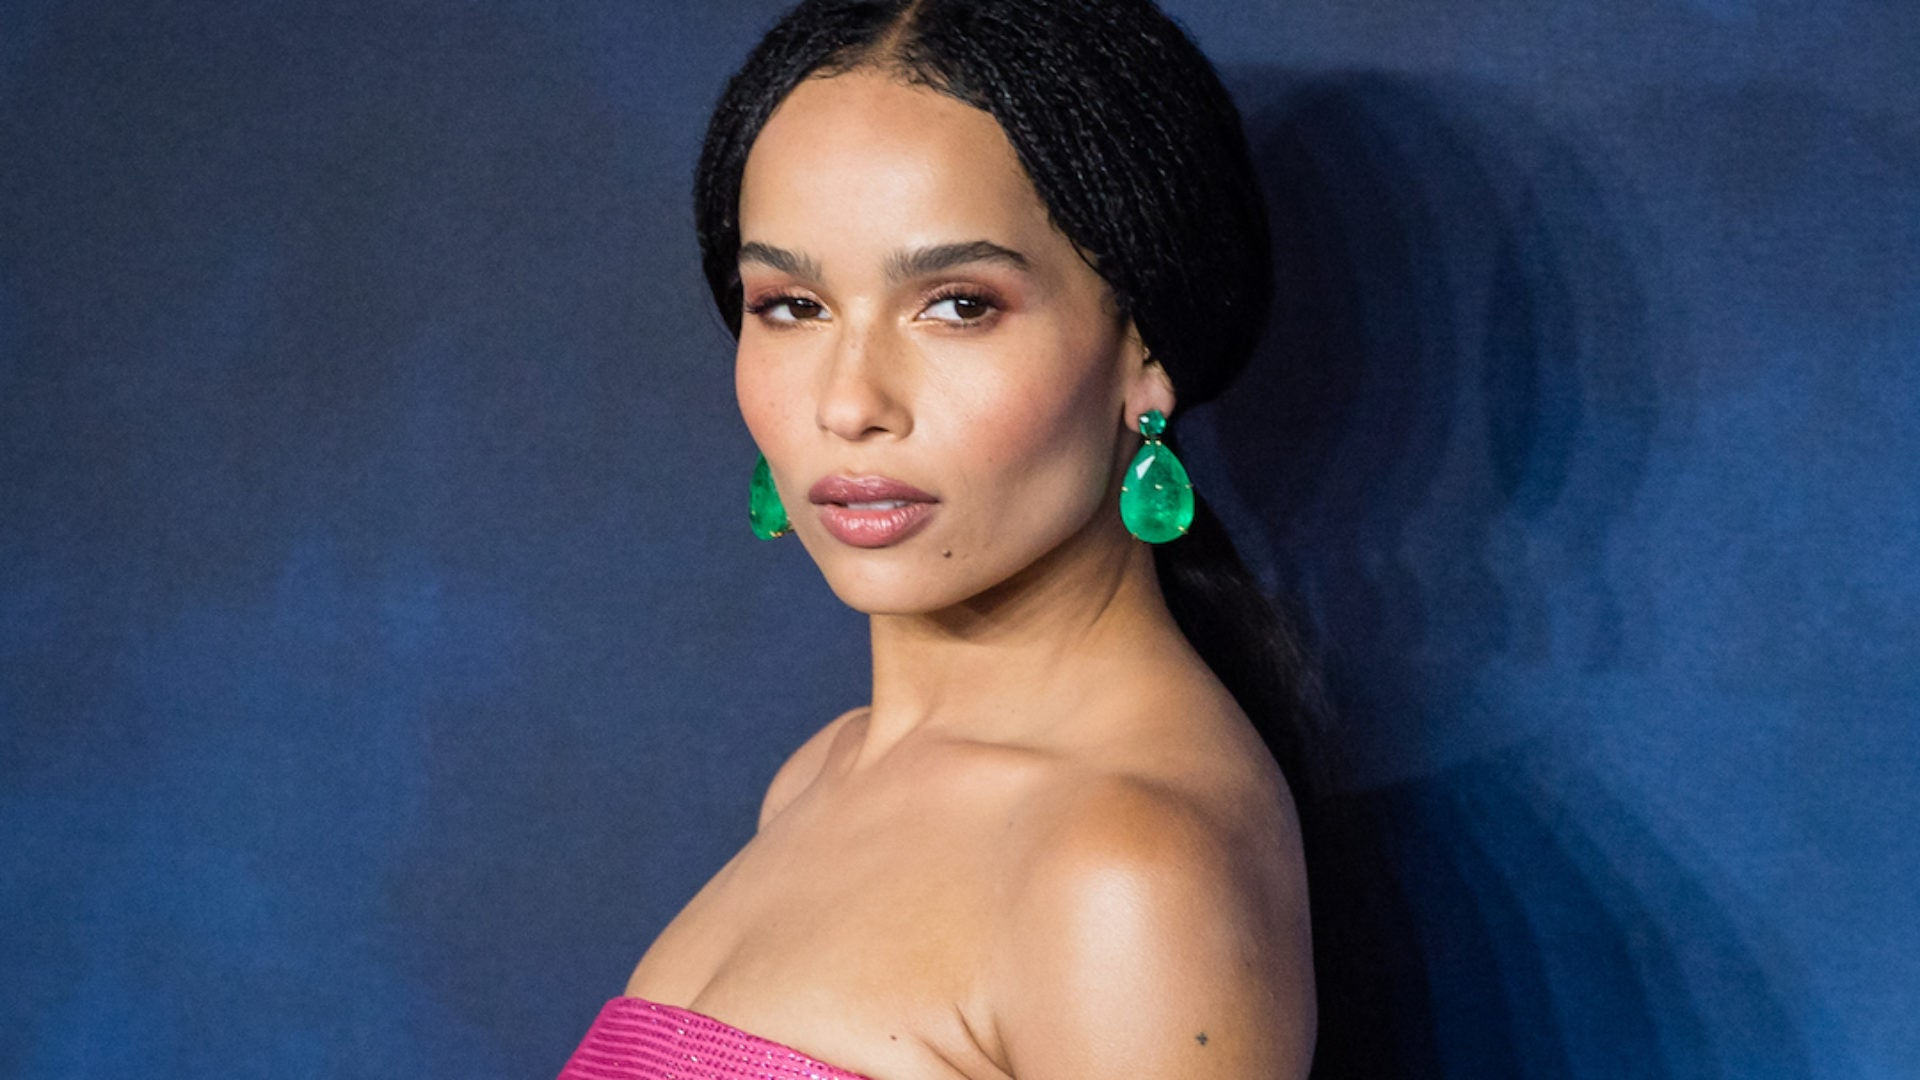 Zoe Kravitz Is The New Catwoman In 'The Batman'